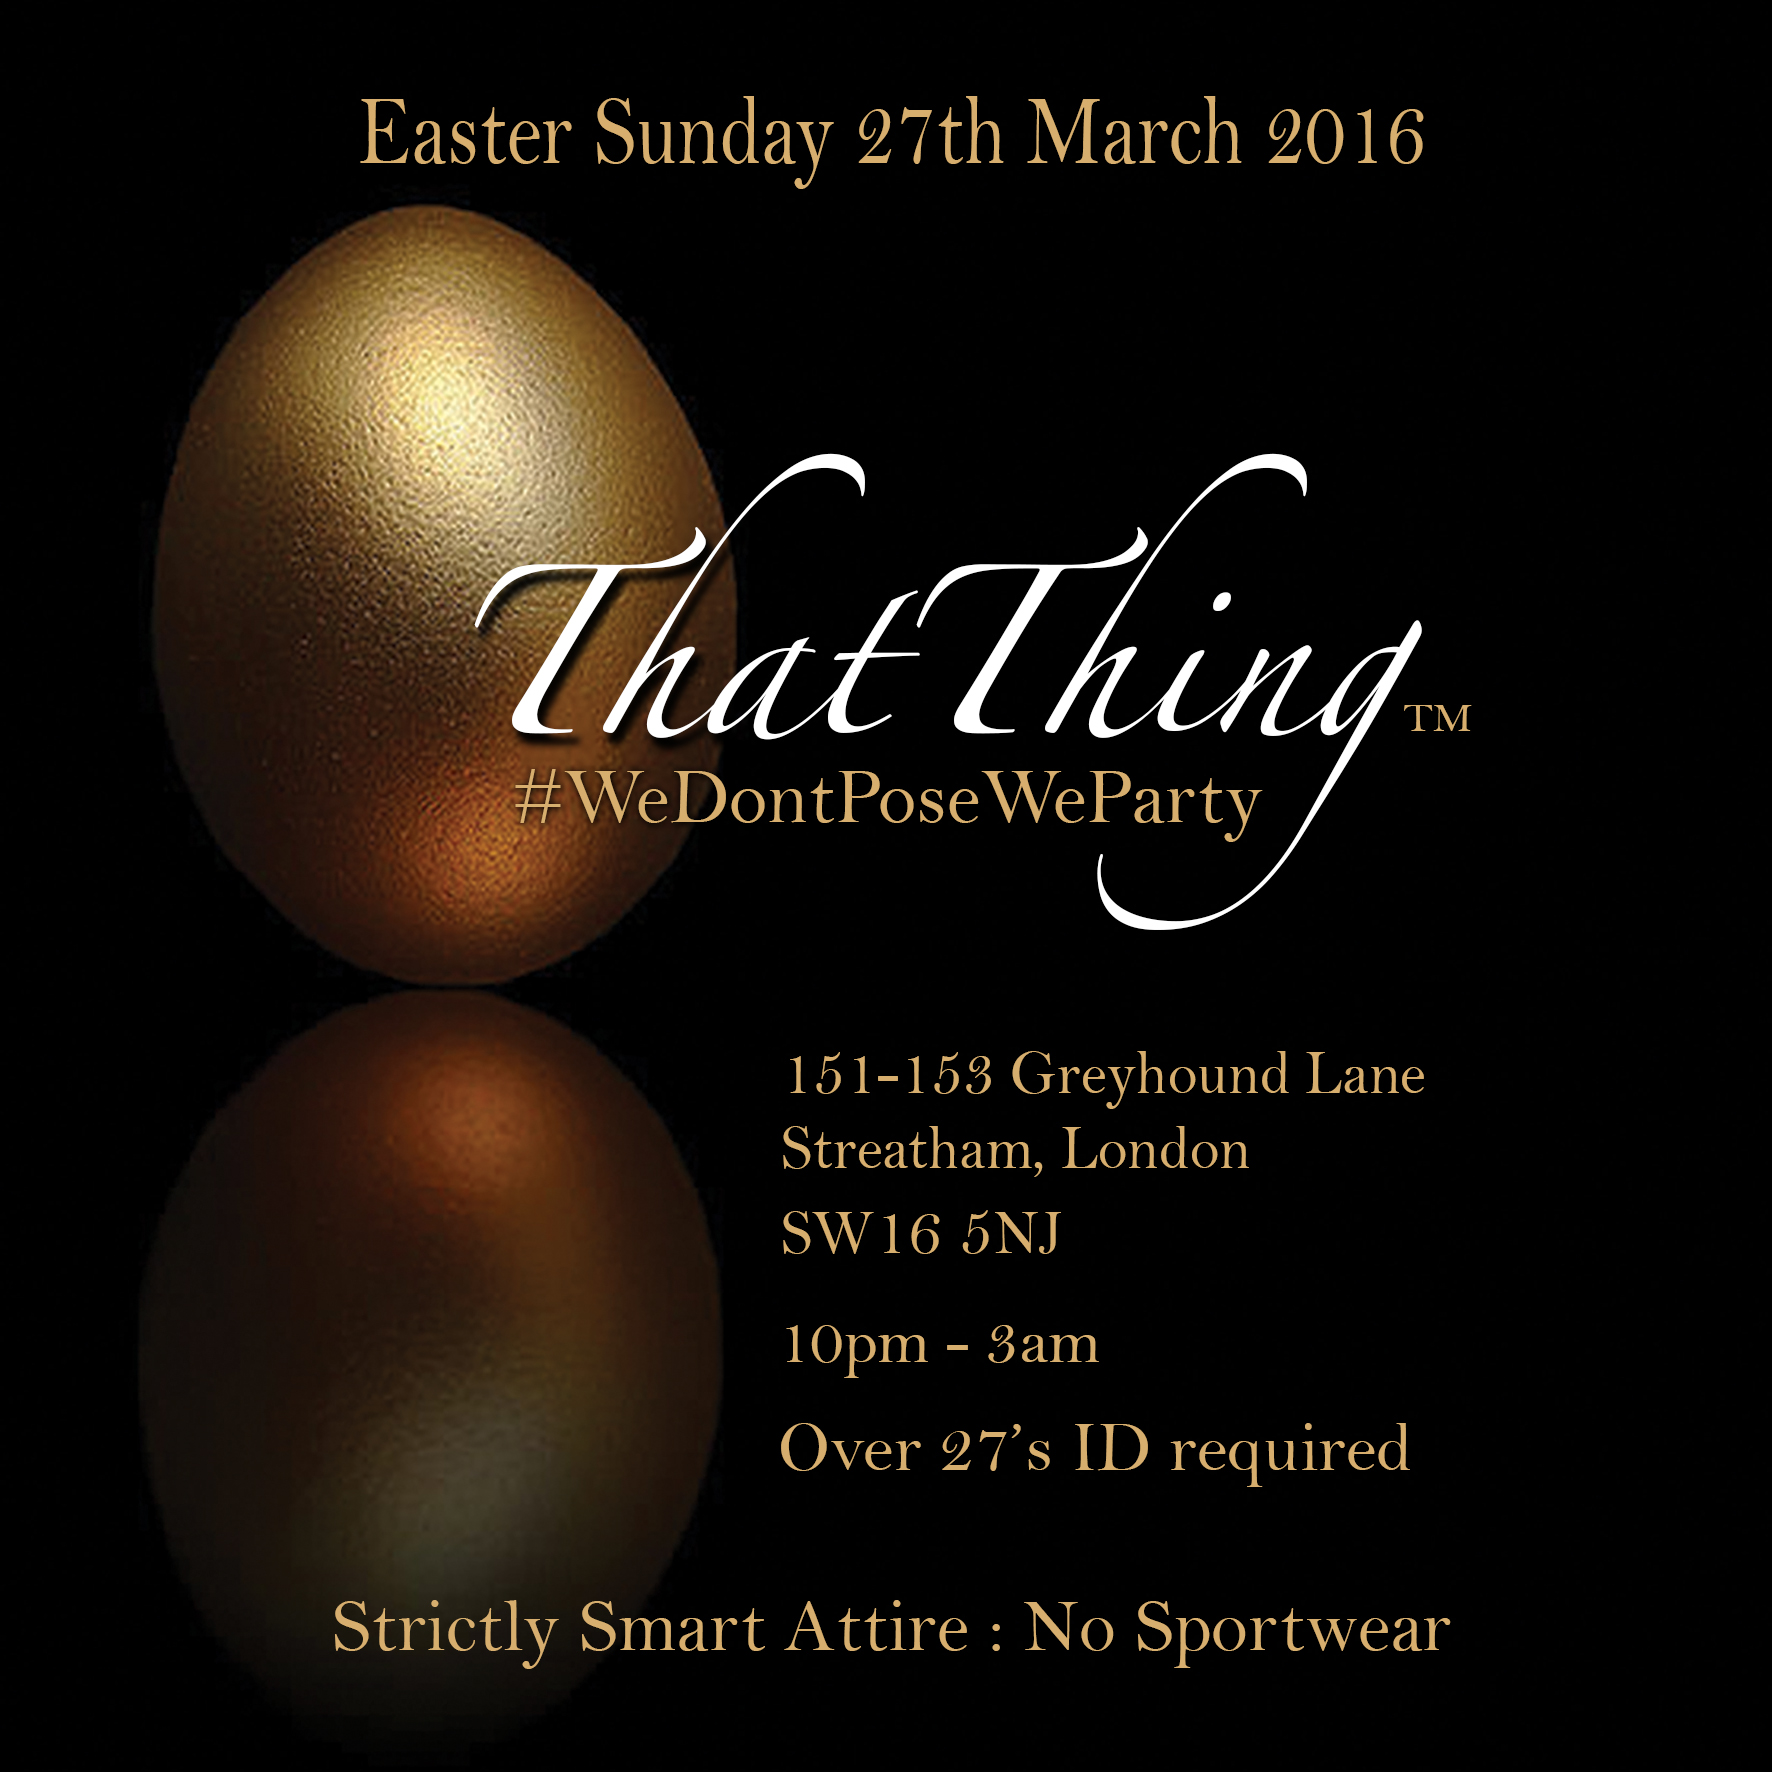 ThatThing Easter Sunday 27th March 2016